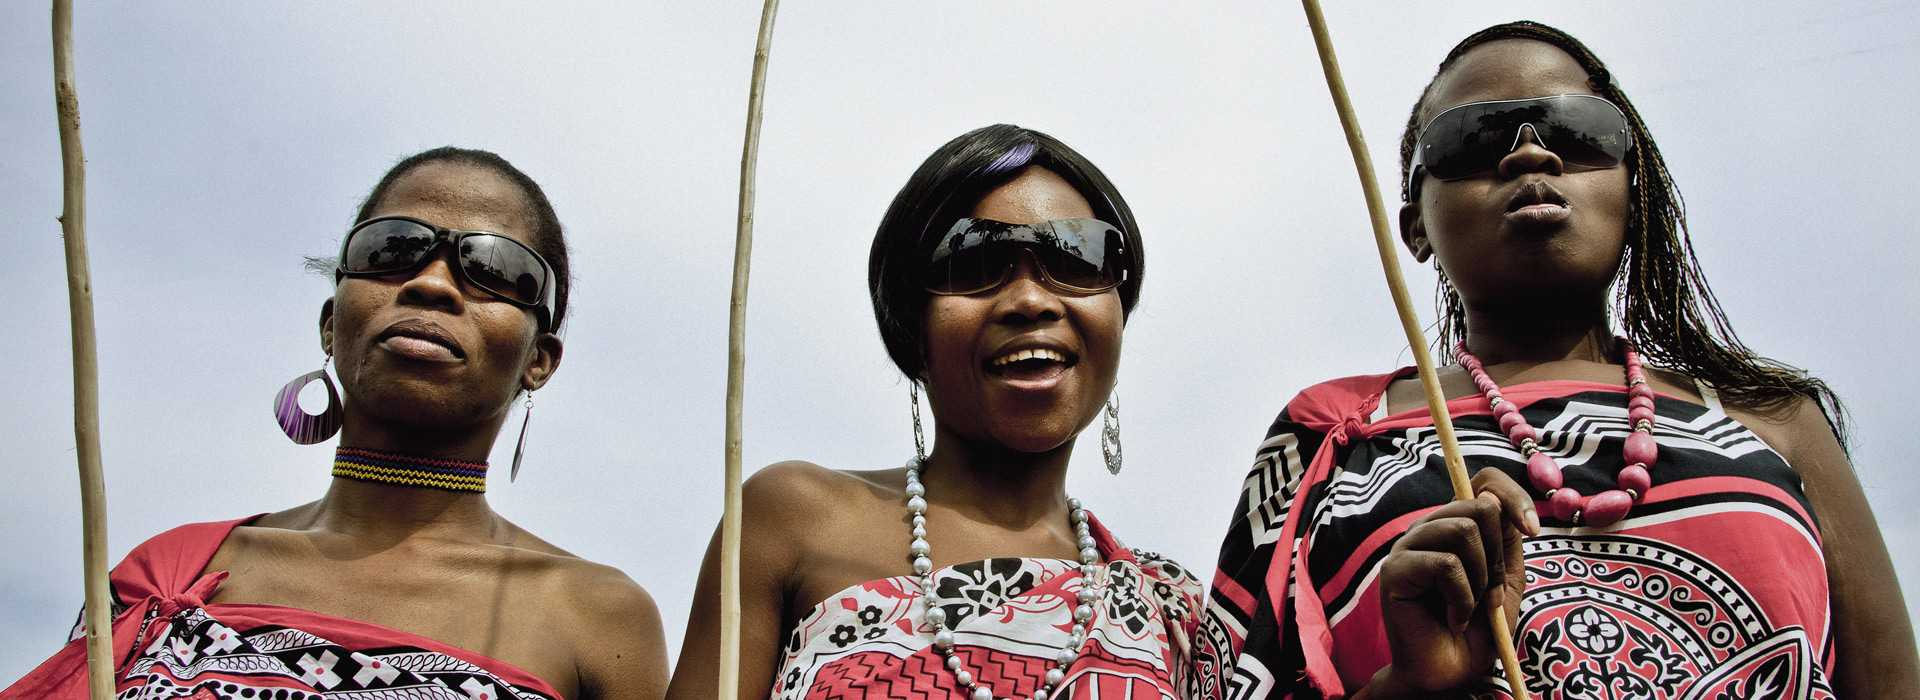 Three Swazi Women In Traditional Clothes